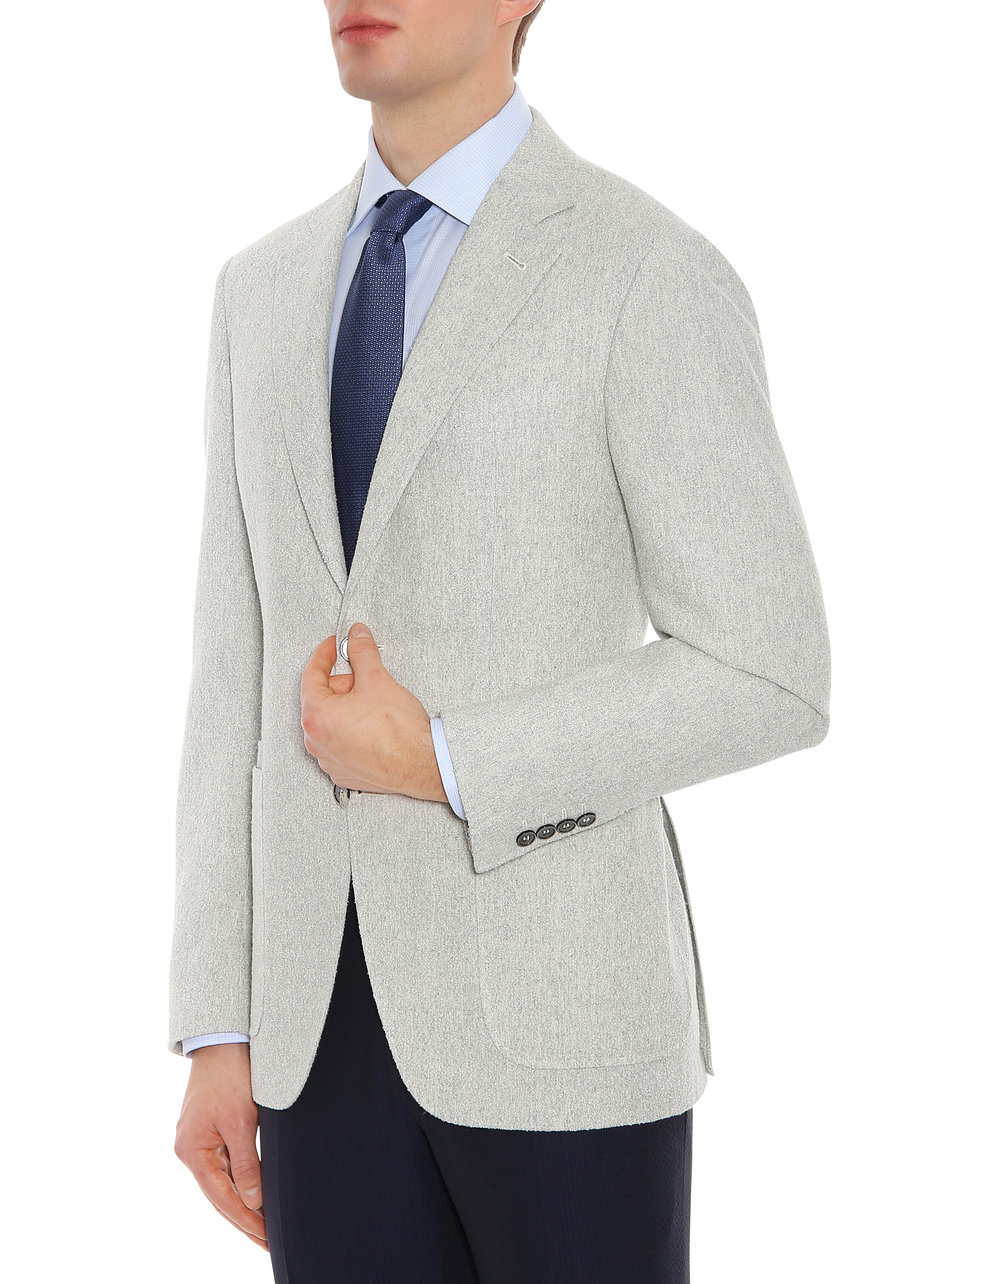 Look 1: Light Grey Kei Blazer -